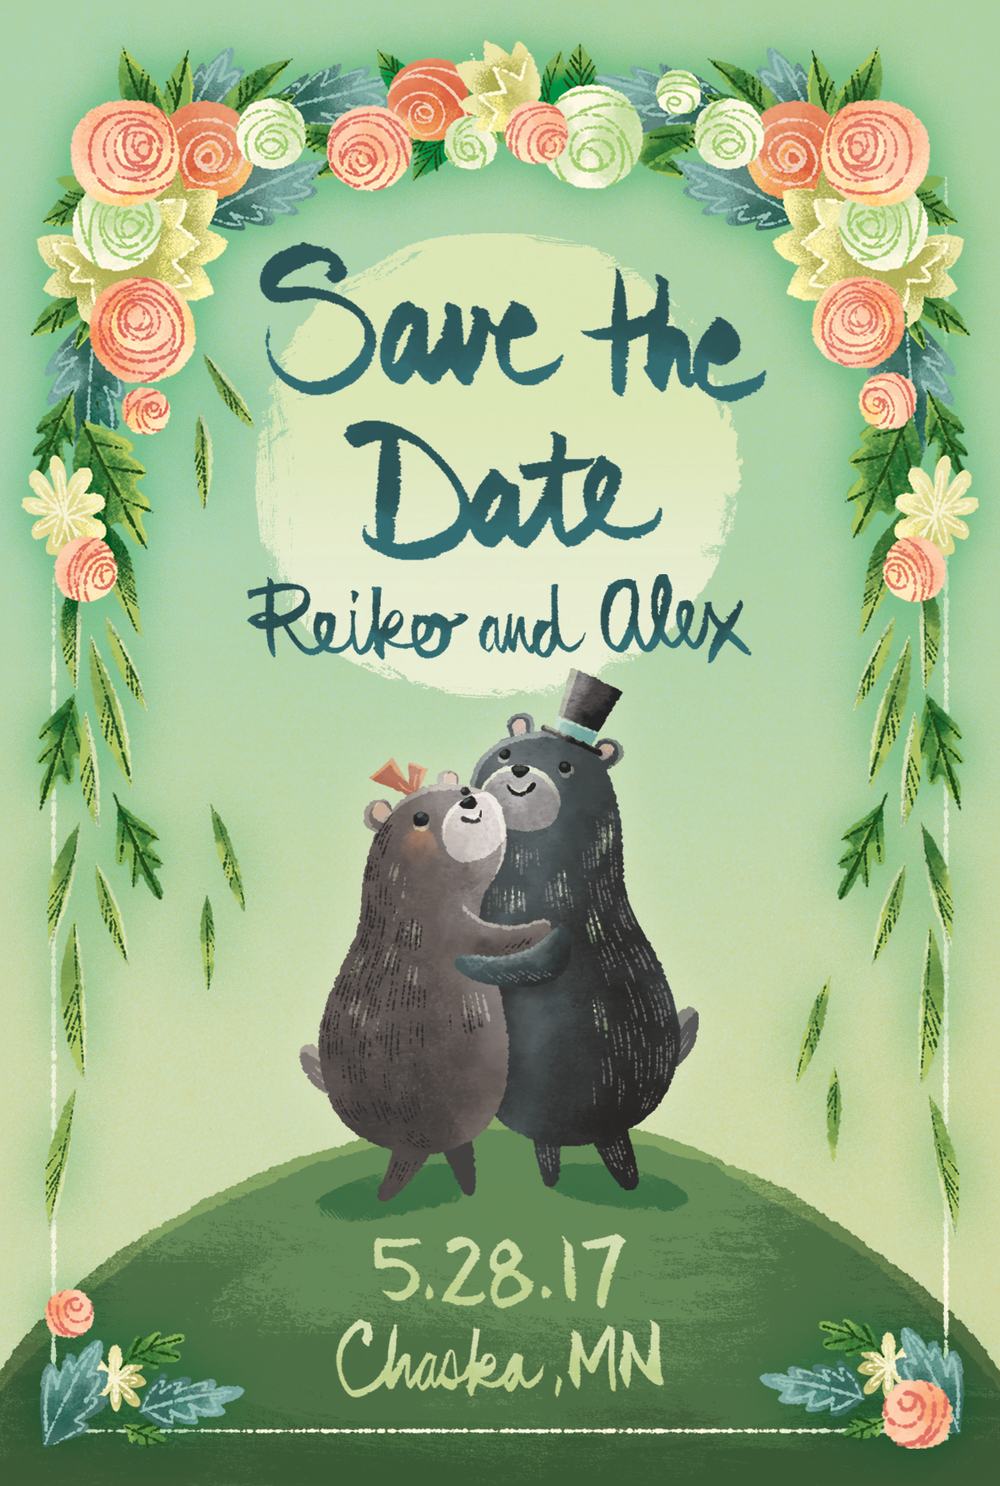 A Save The Date featuring the bride's favorite animal.